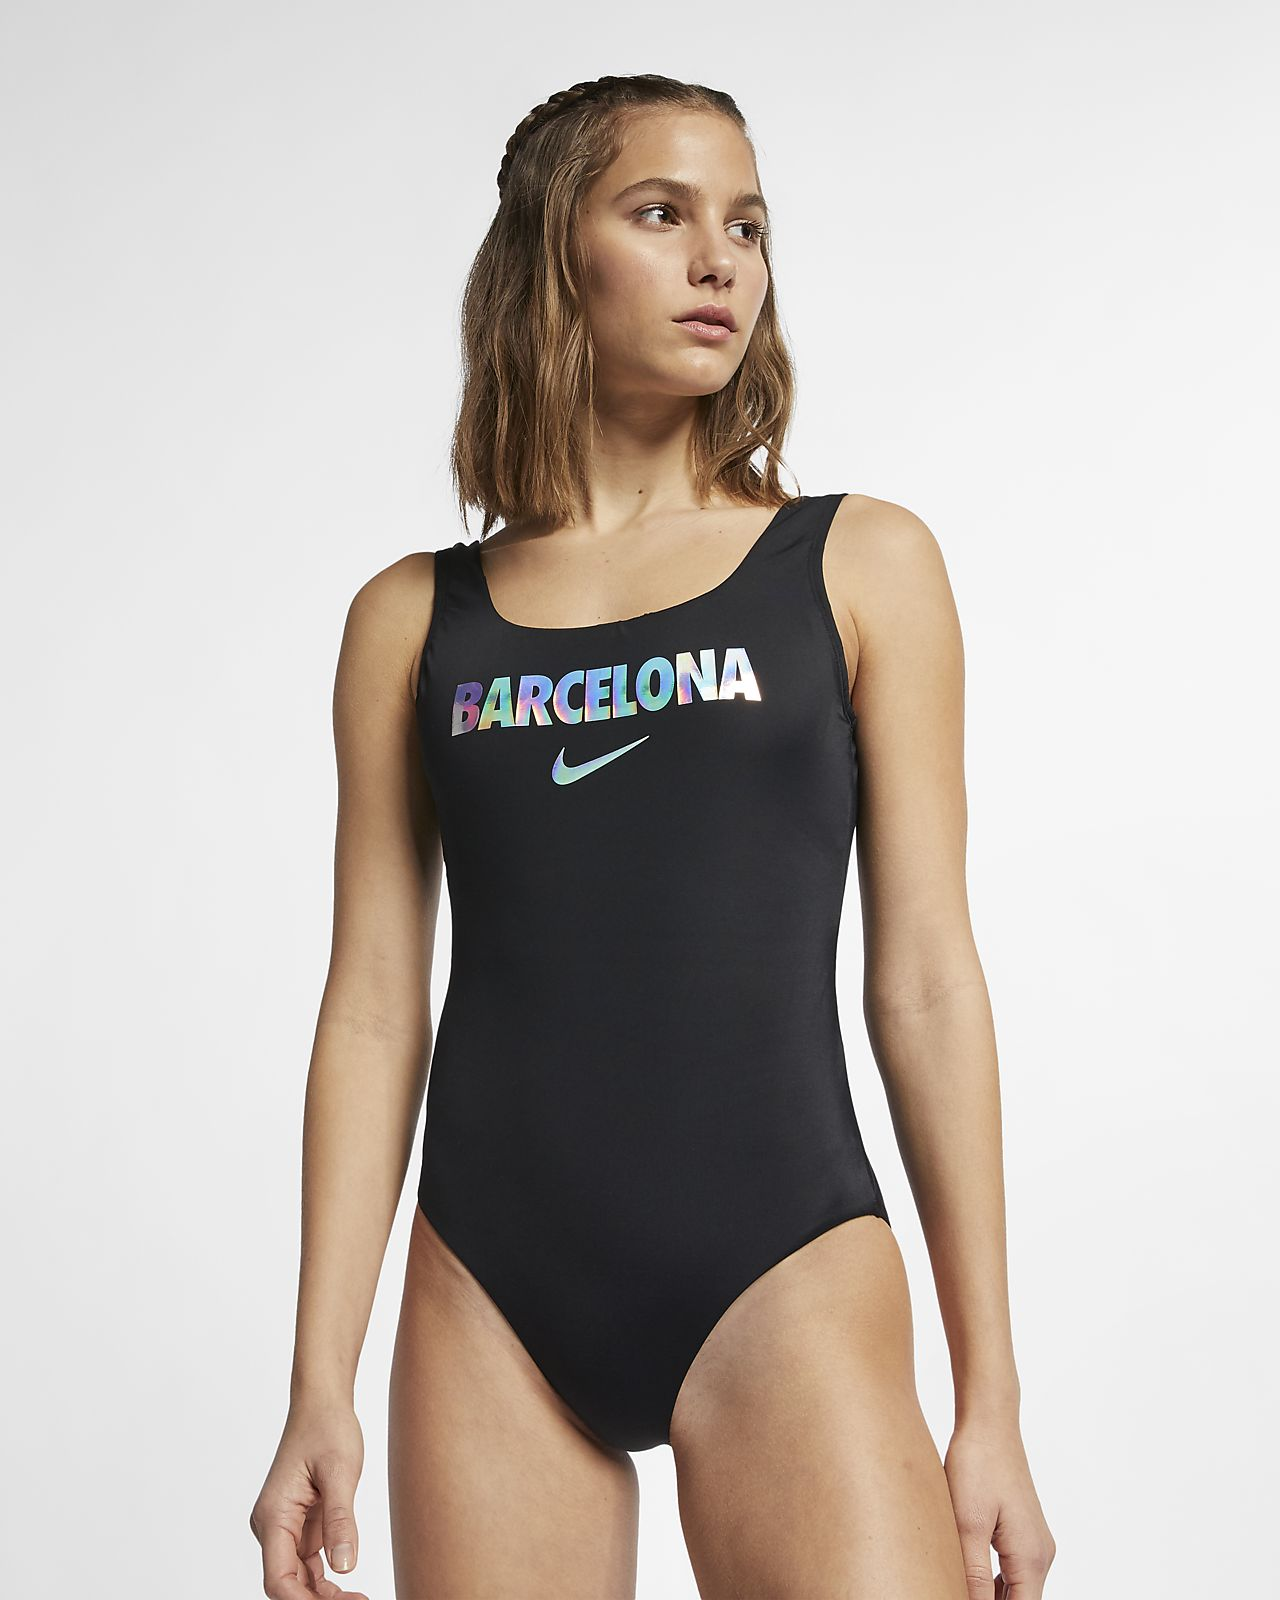 Nike Swim City Series (Barcelona) Women's One-Piece Swimsuit